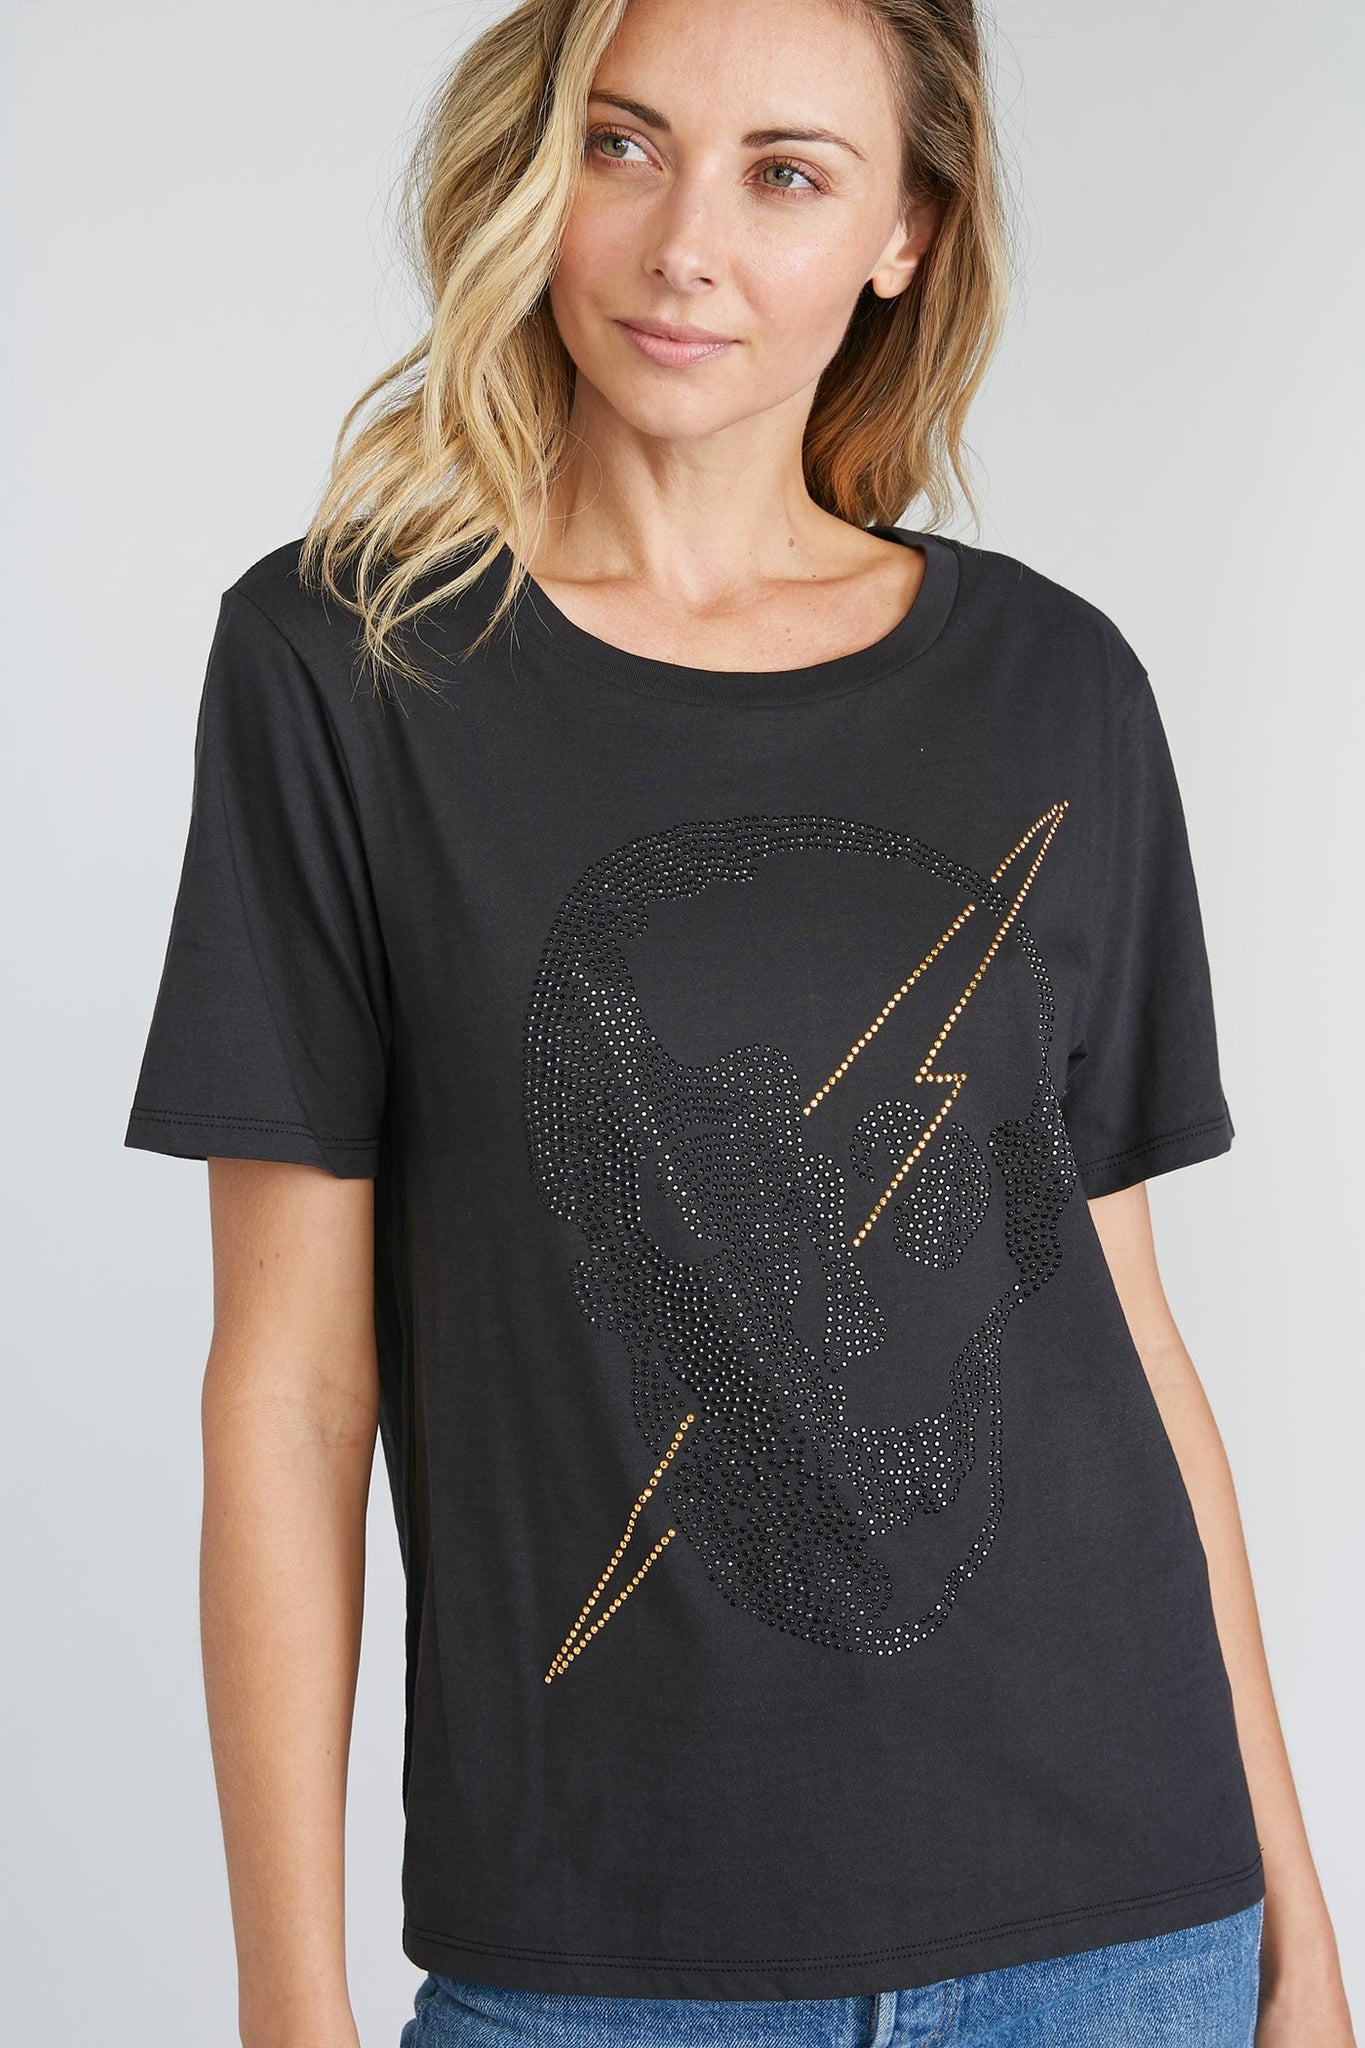 Studded Lightning Skull Wide Tee - black